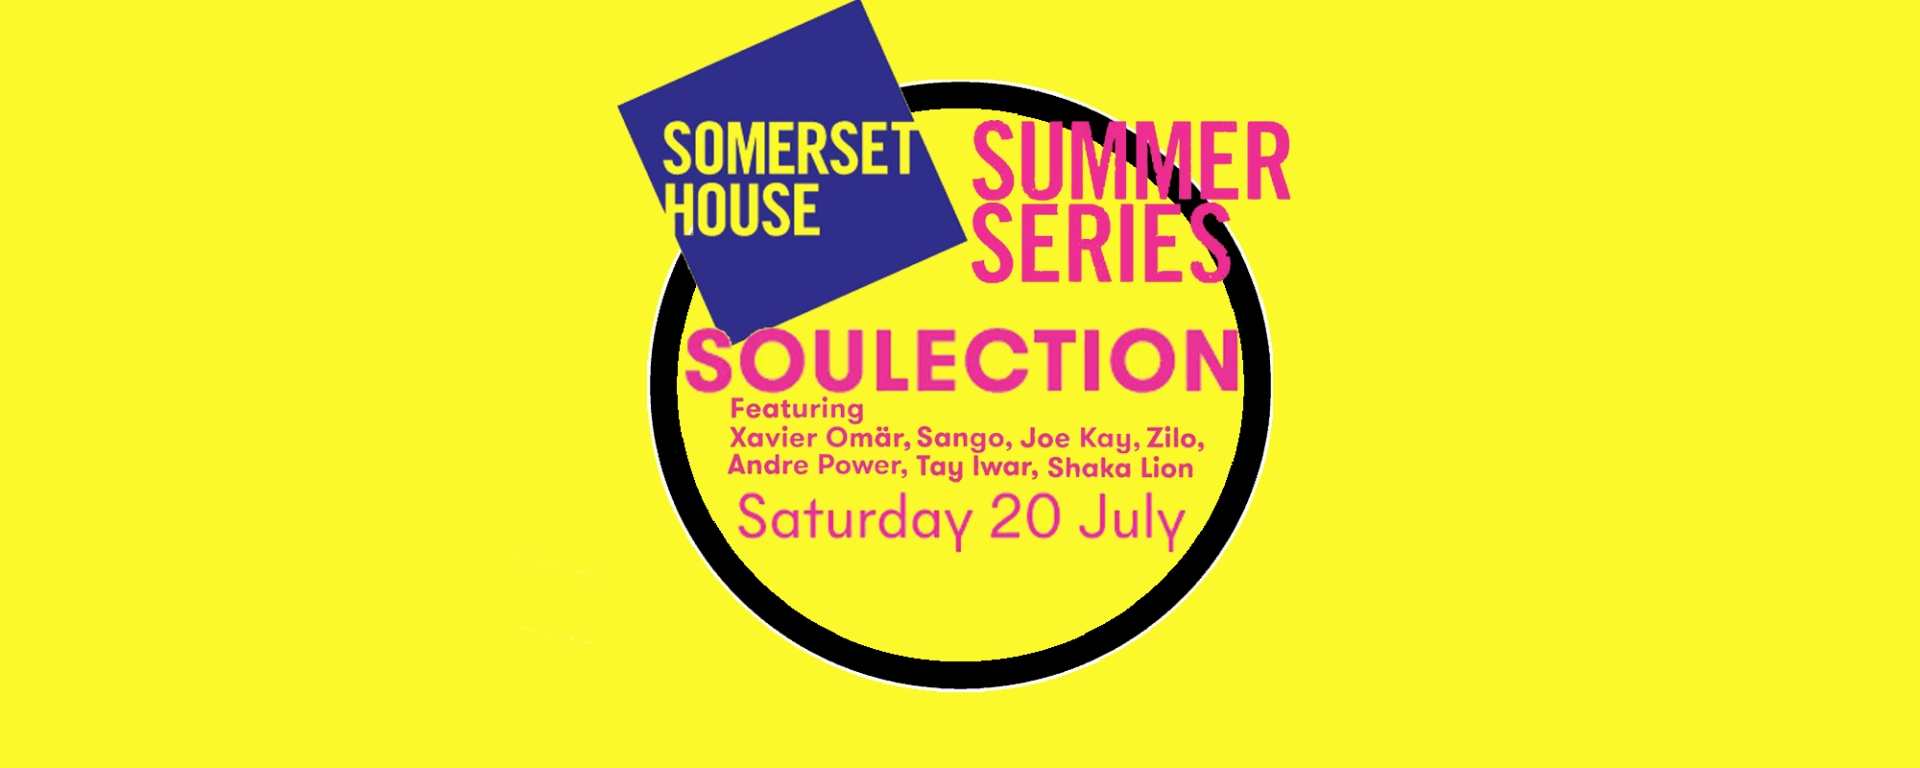 Soulection at Somerset House Summer Series London 20 July 2019